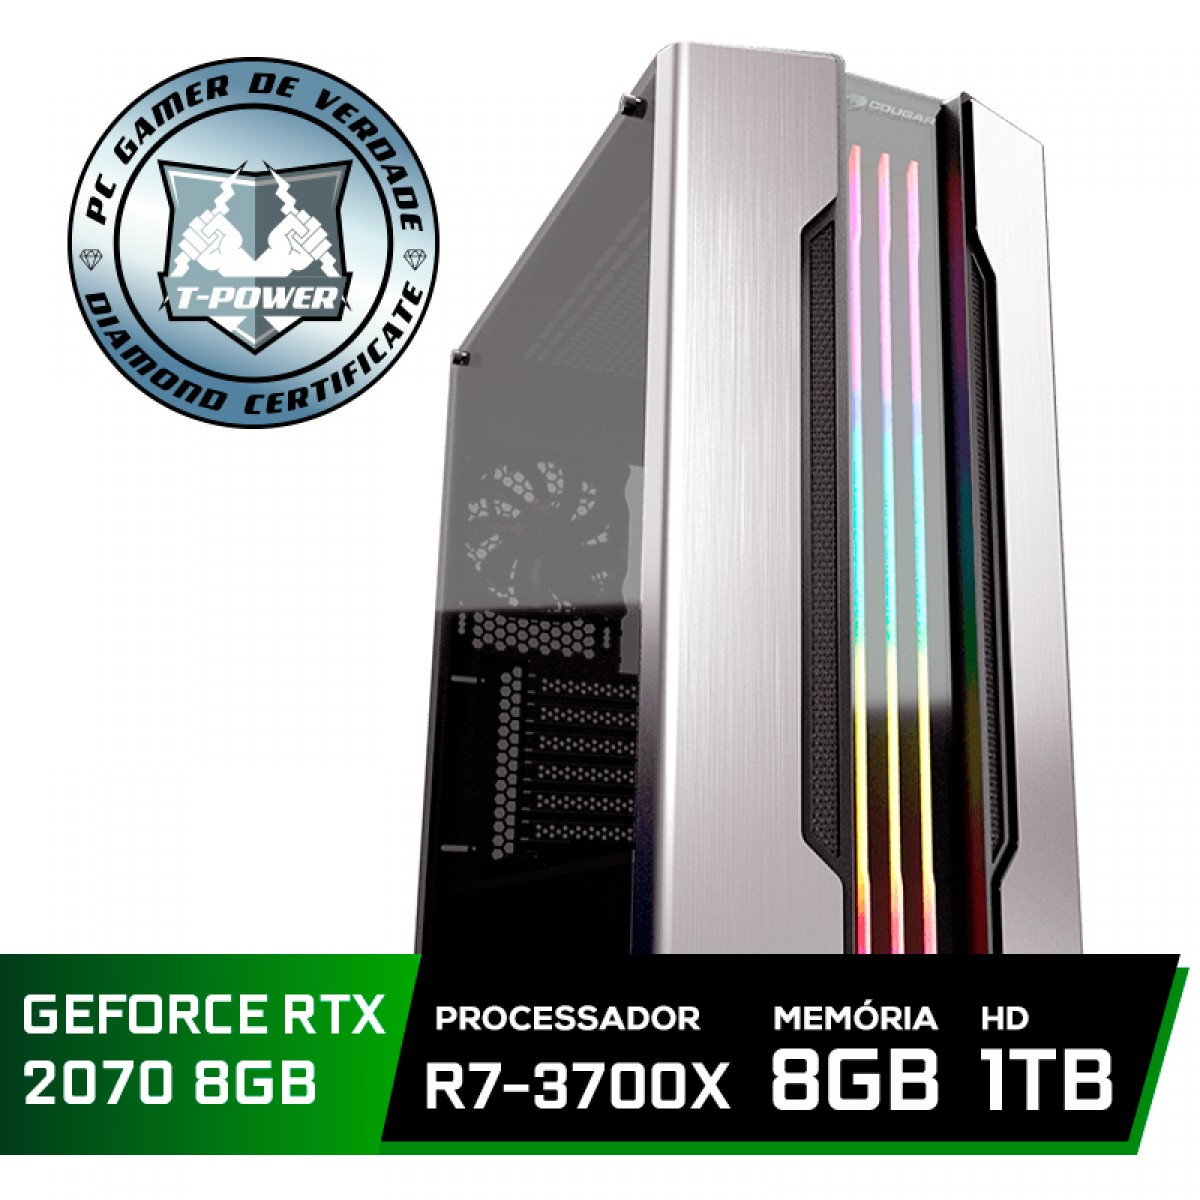 Pc Gamer Super Tera Edition AMD Ryzen 7 3700X / GeForce RTX 2070 / DDR4 8GB / HD 1TB / 600W